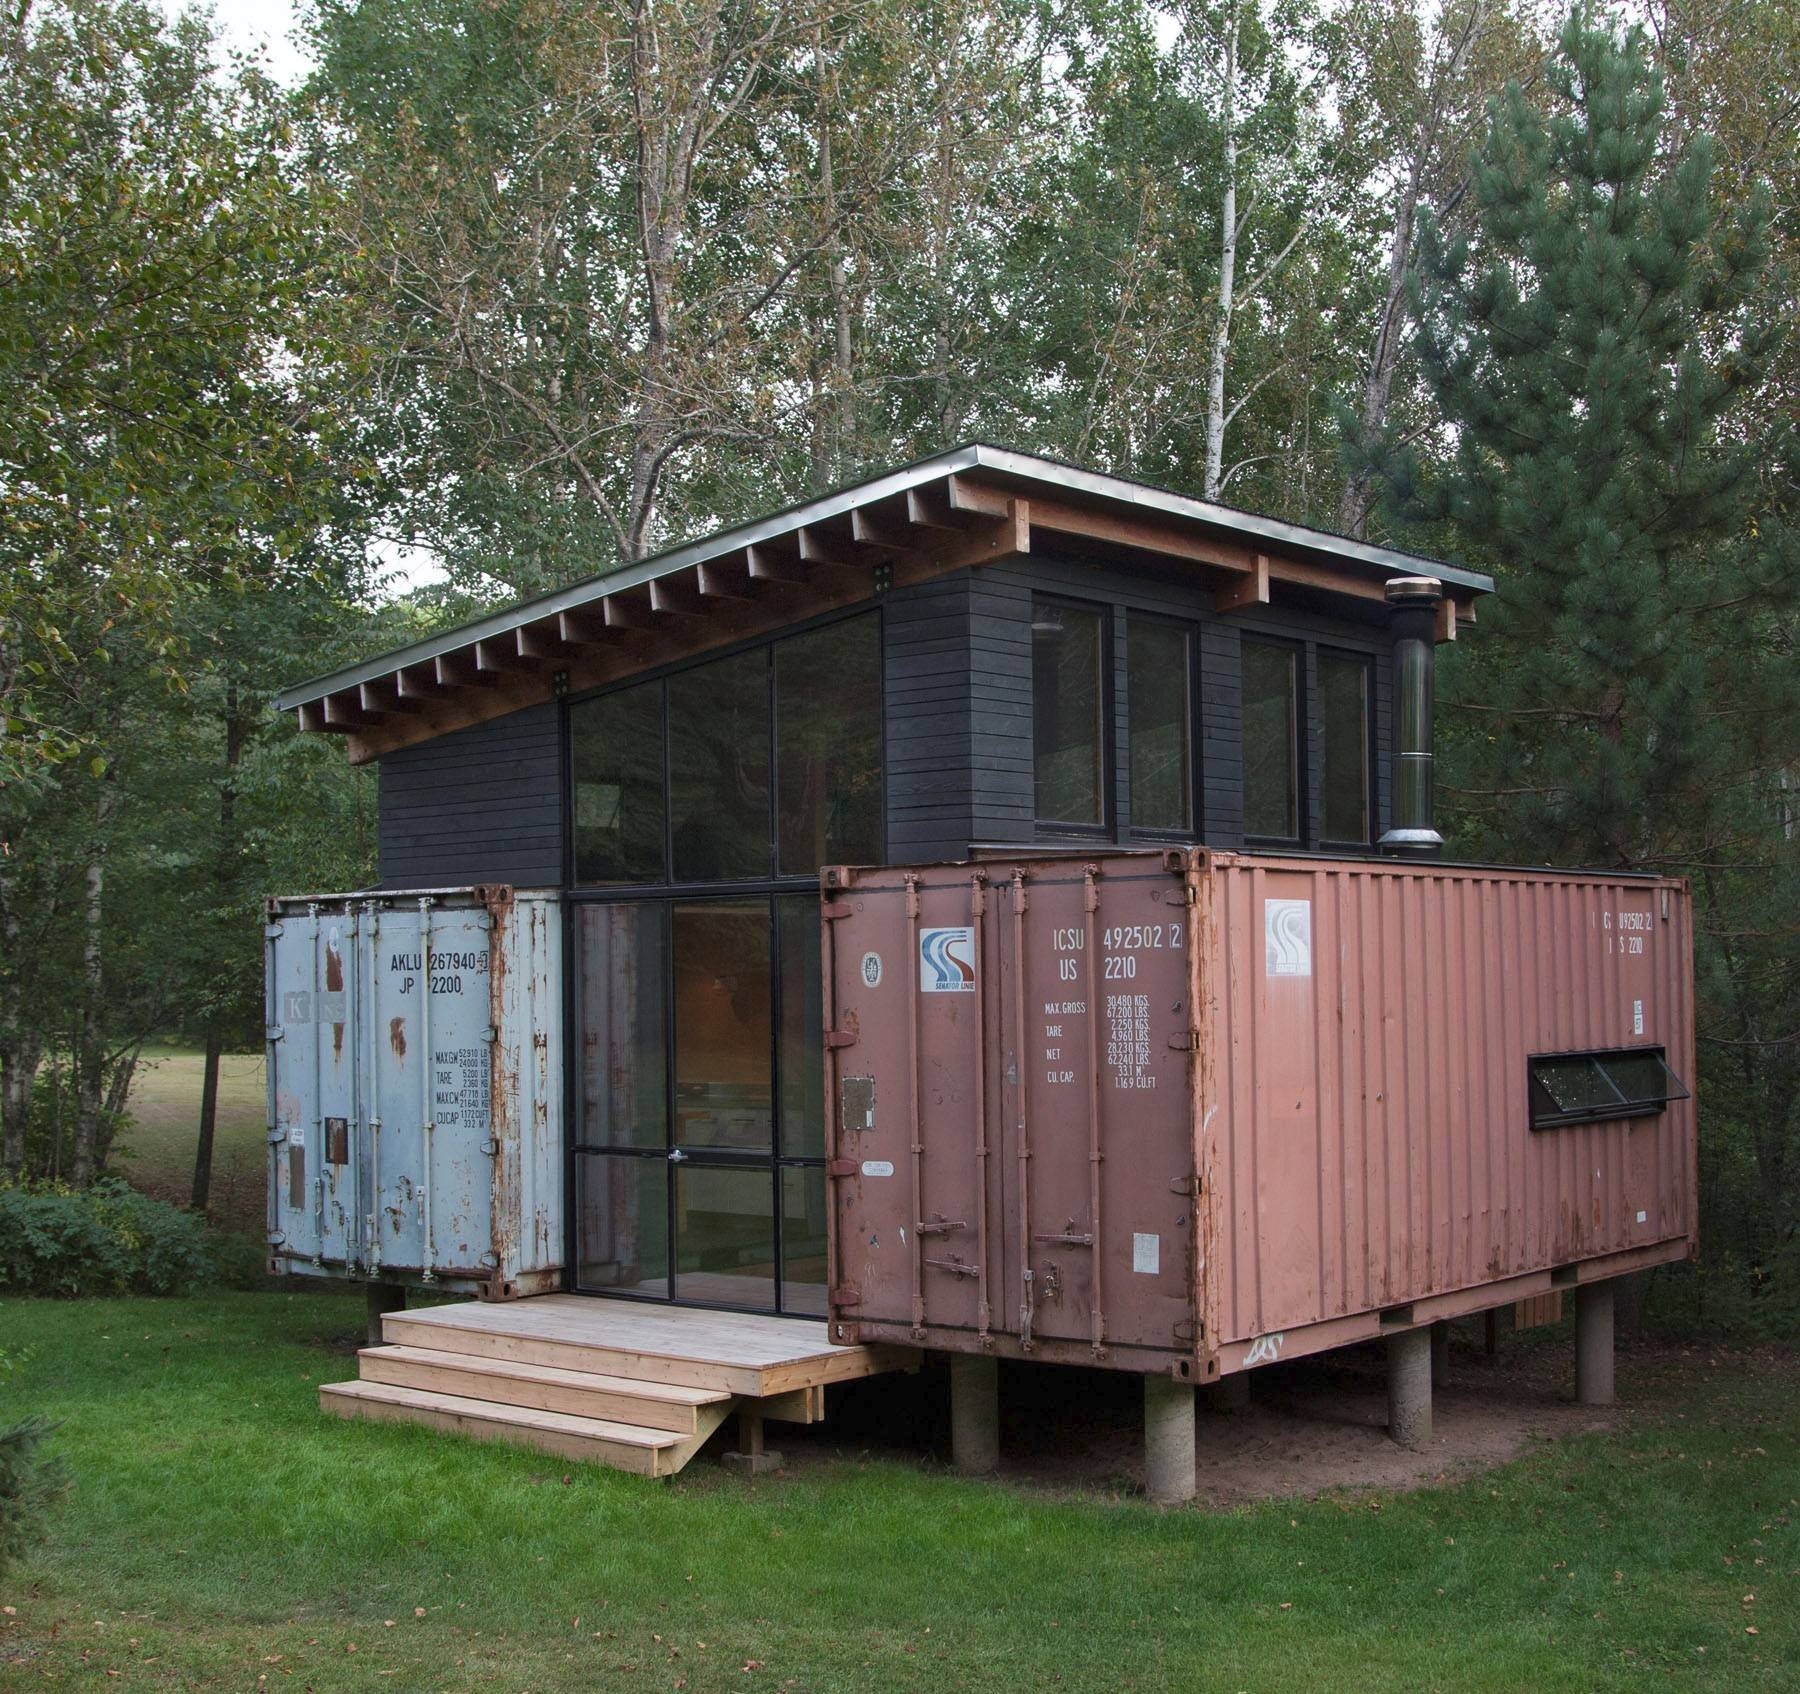 Tiny house trend can spark ideas